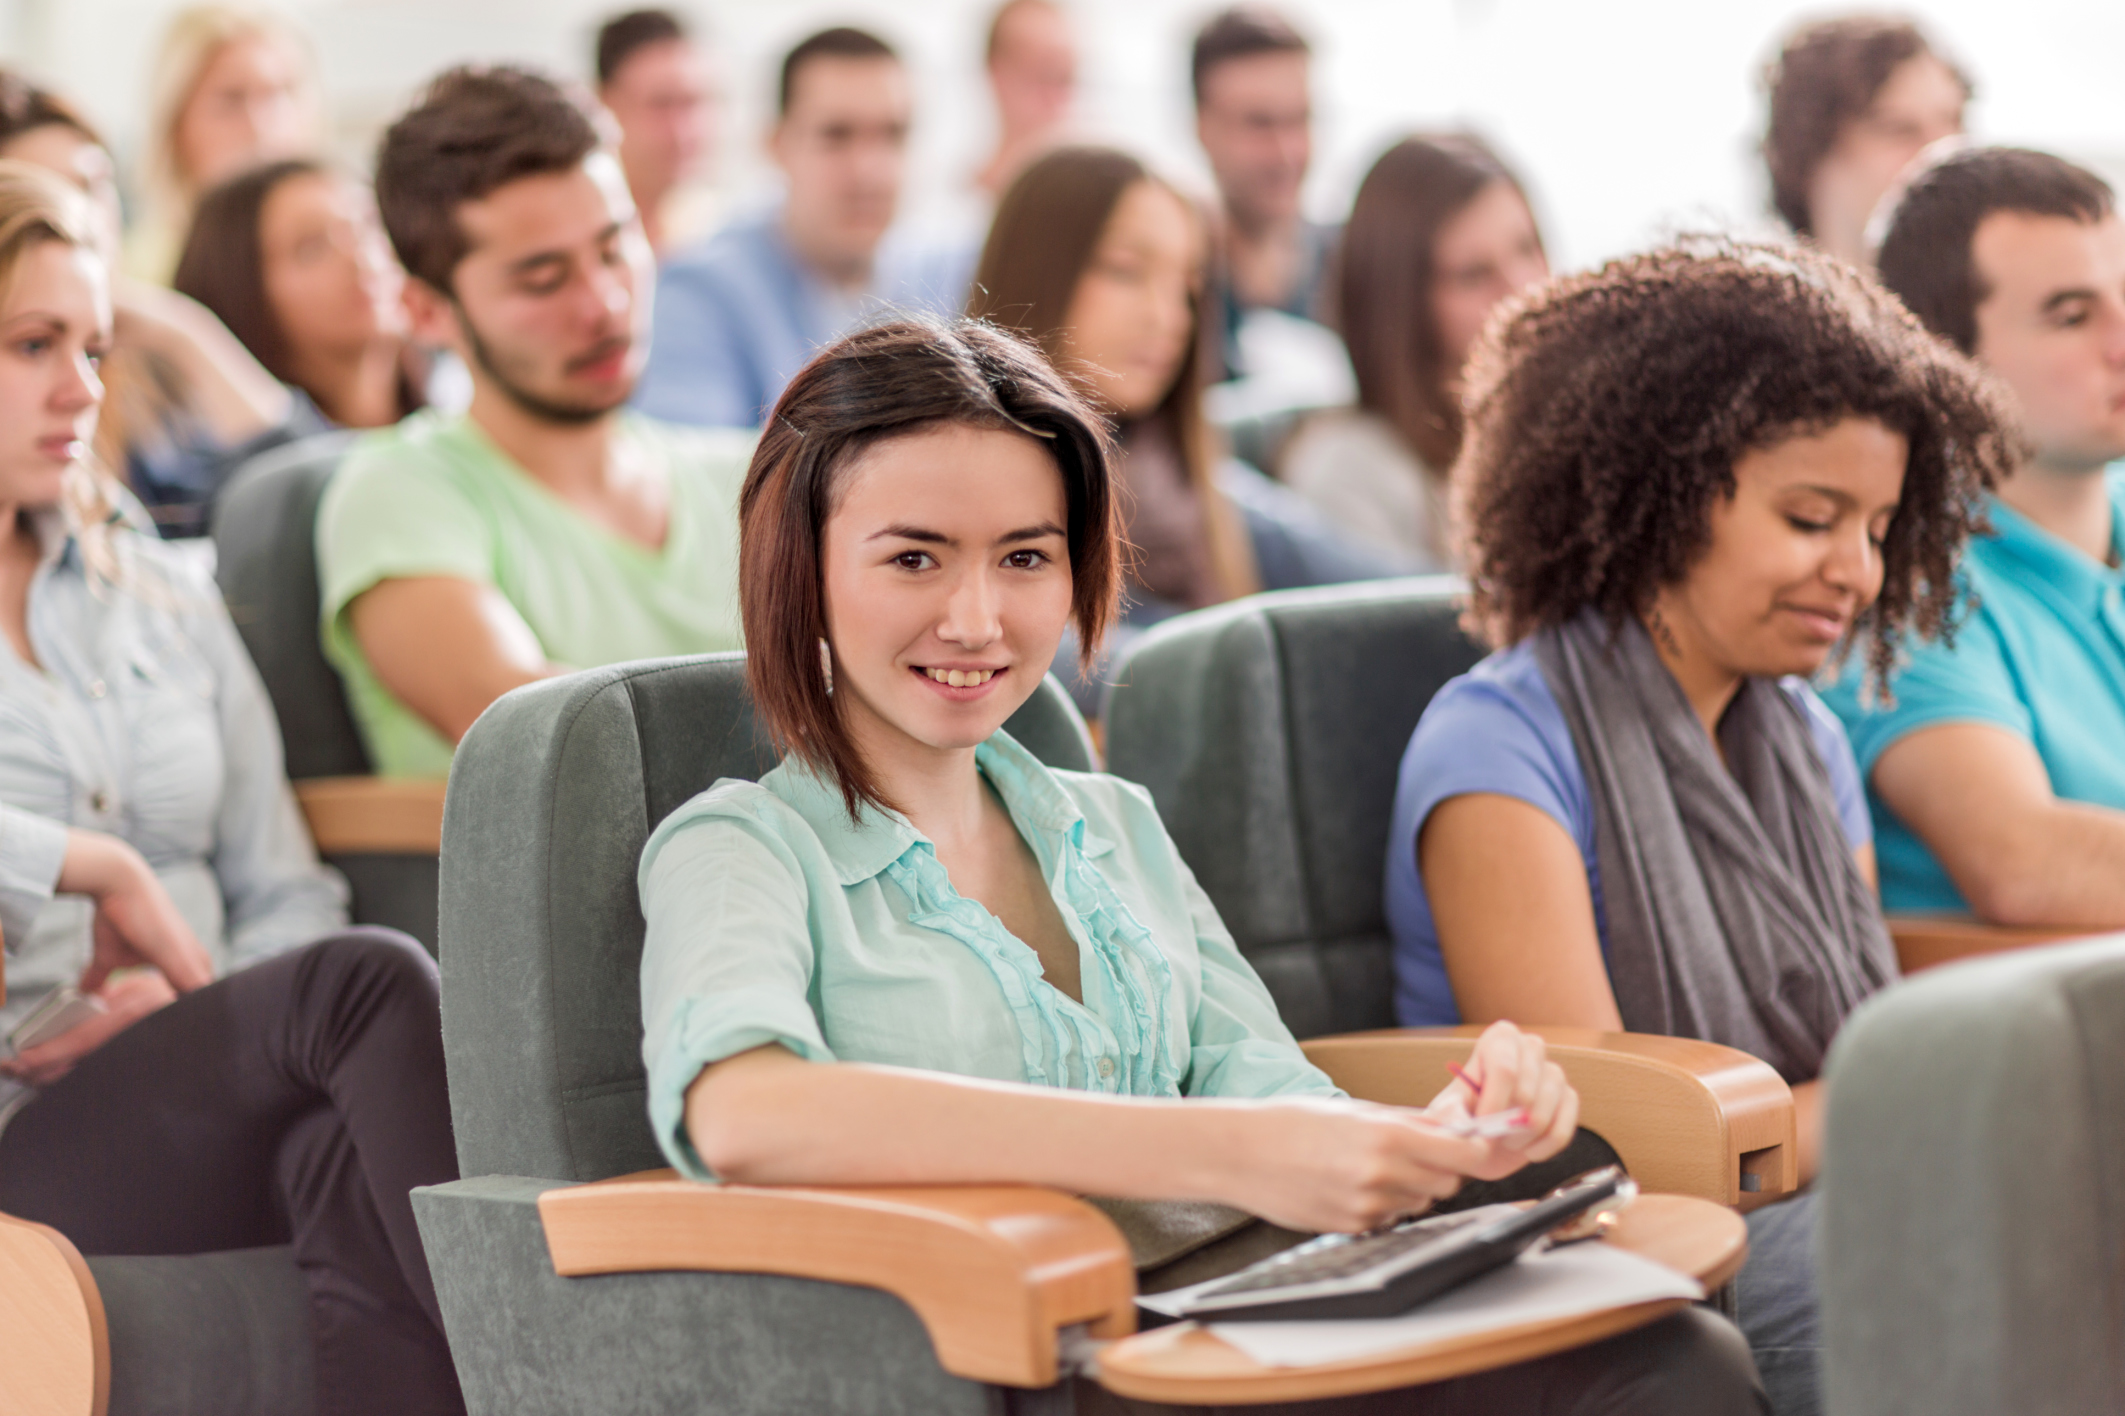 internatinal students essay International relations essay topics for students 9/11 international relations essay topics it's absolutely important to pick an excellent and fresh topic for any essay that you need to write, as this is what will provide you with a great opportunity to easily achieve your academic success.